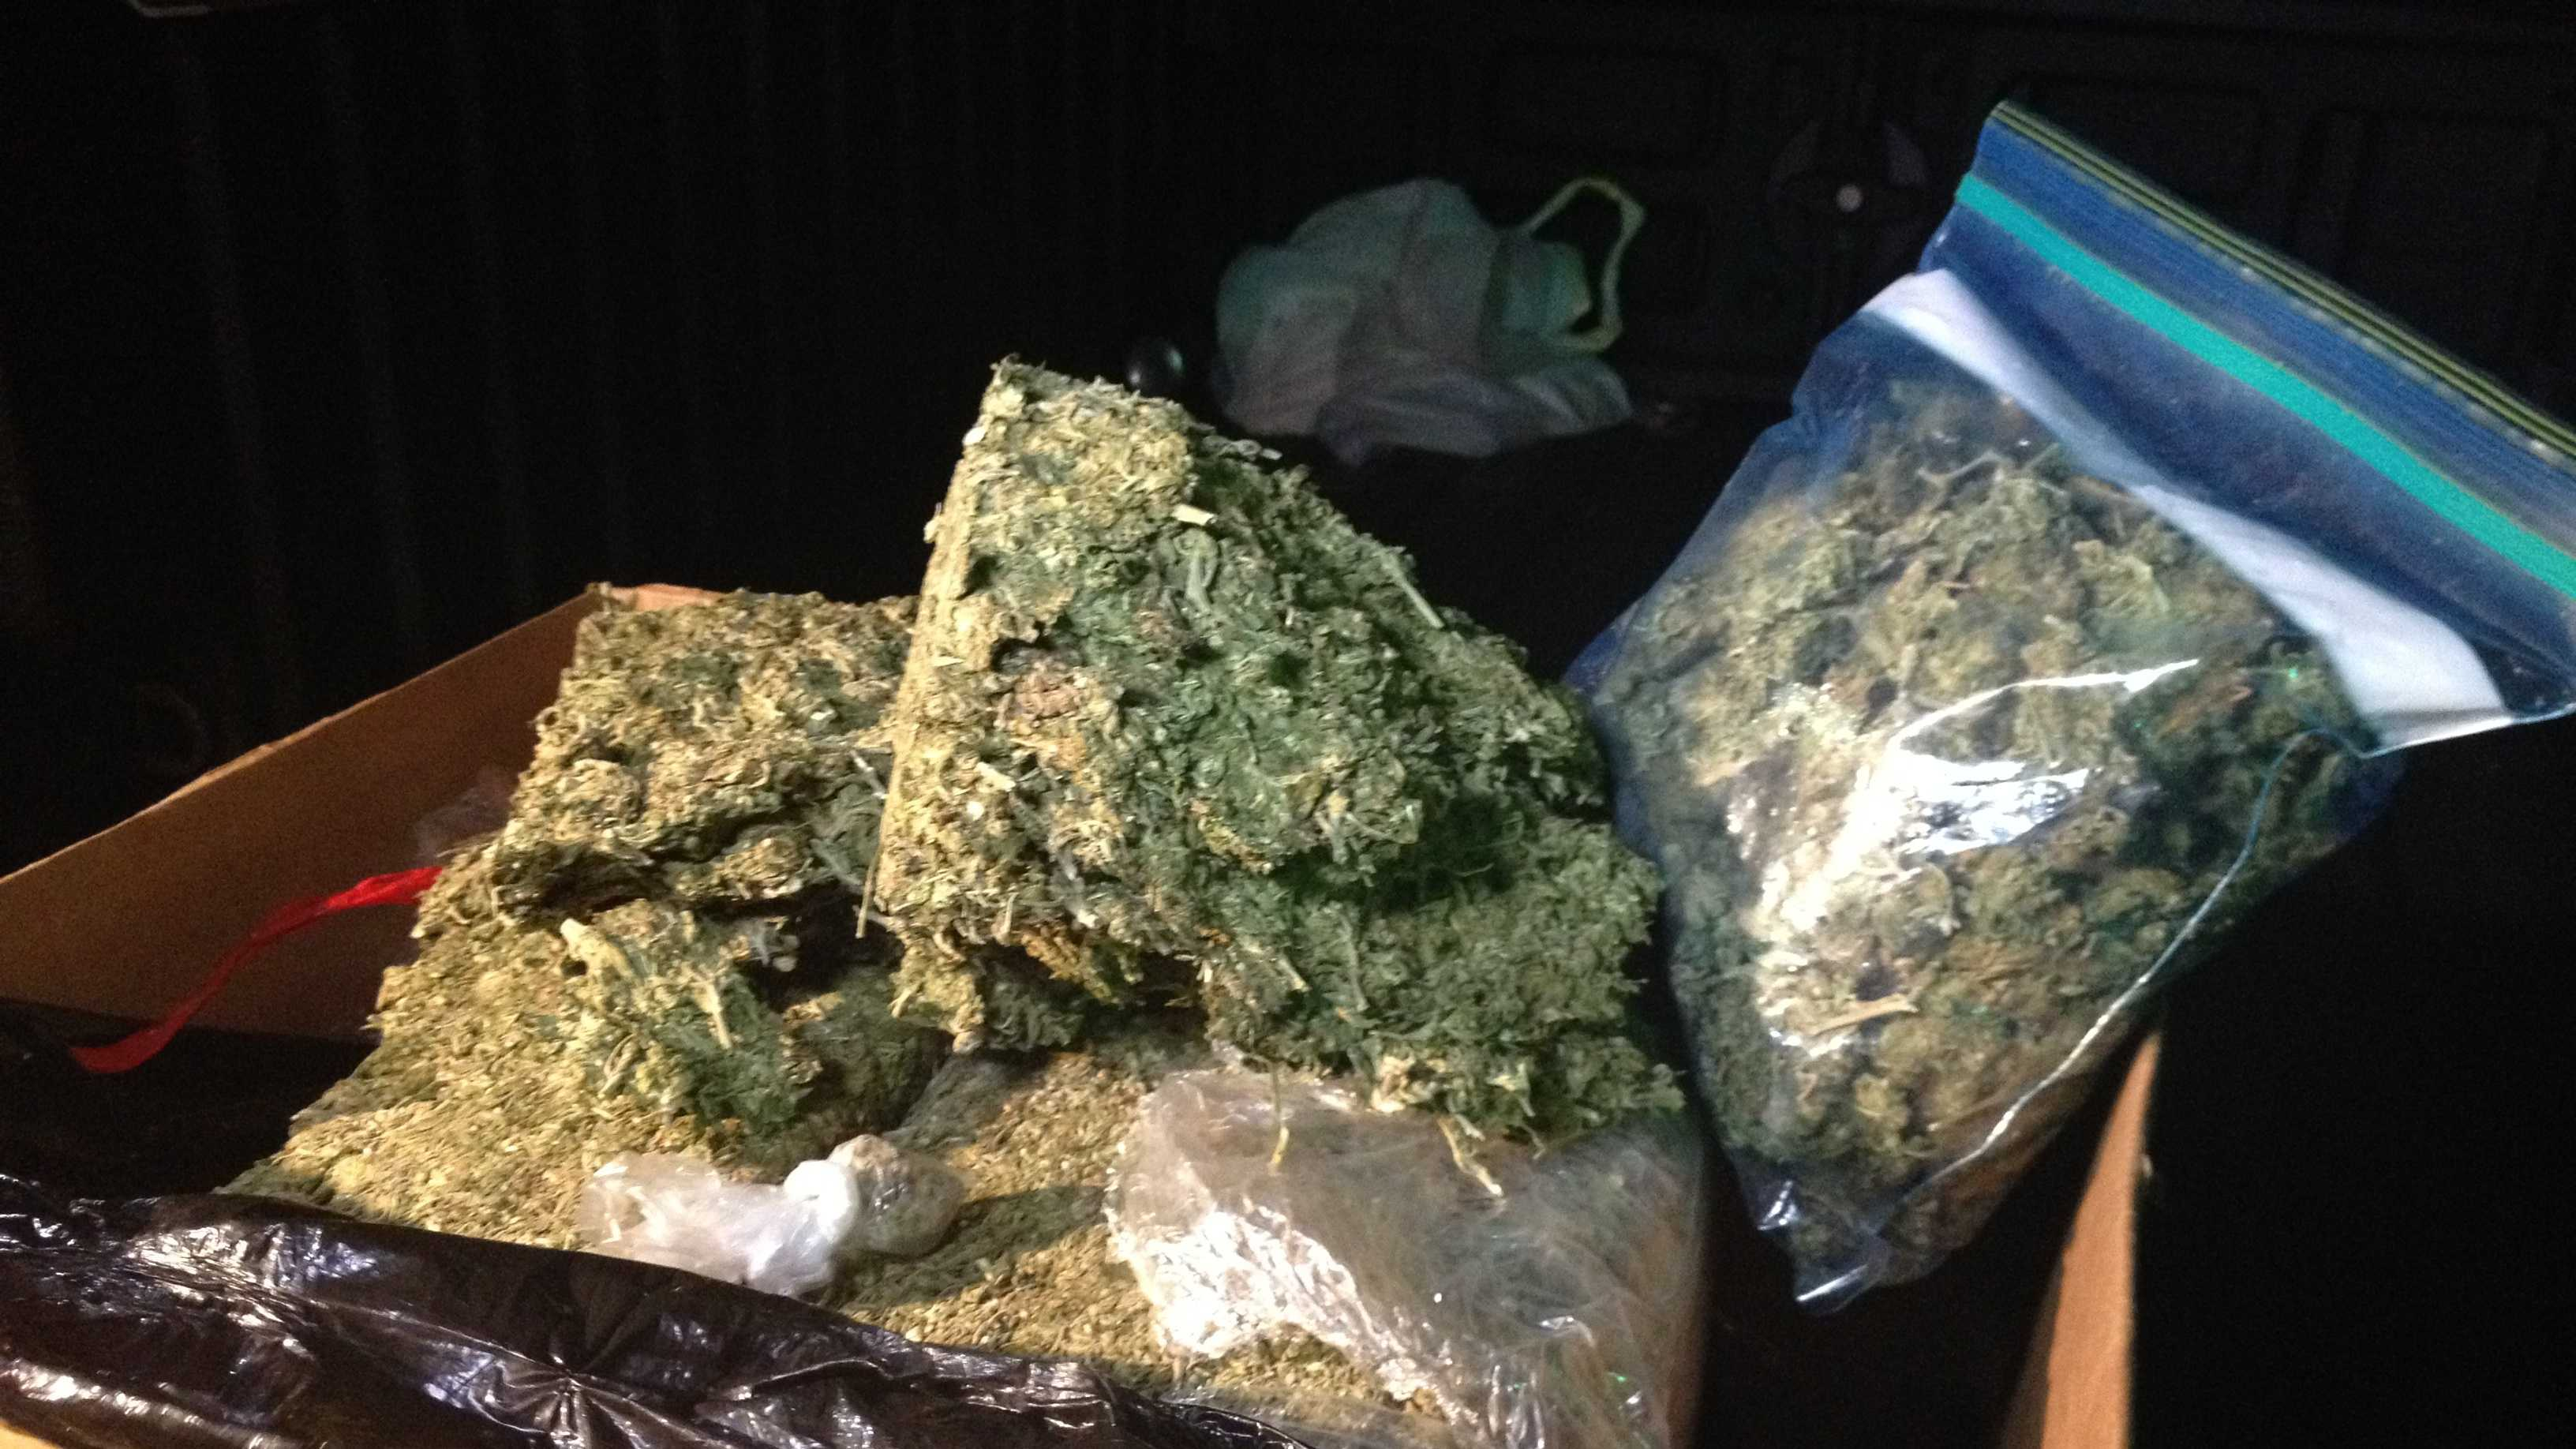 The Hinds County sheriff seizes 25 pounds of marijuana and makes four arrests in a drug bust.